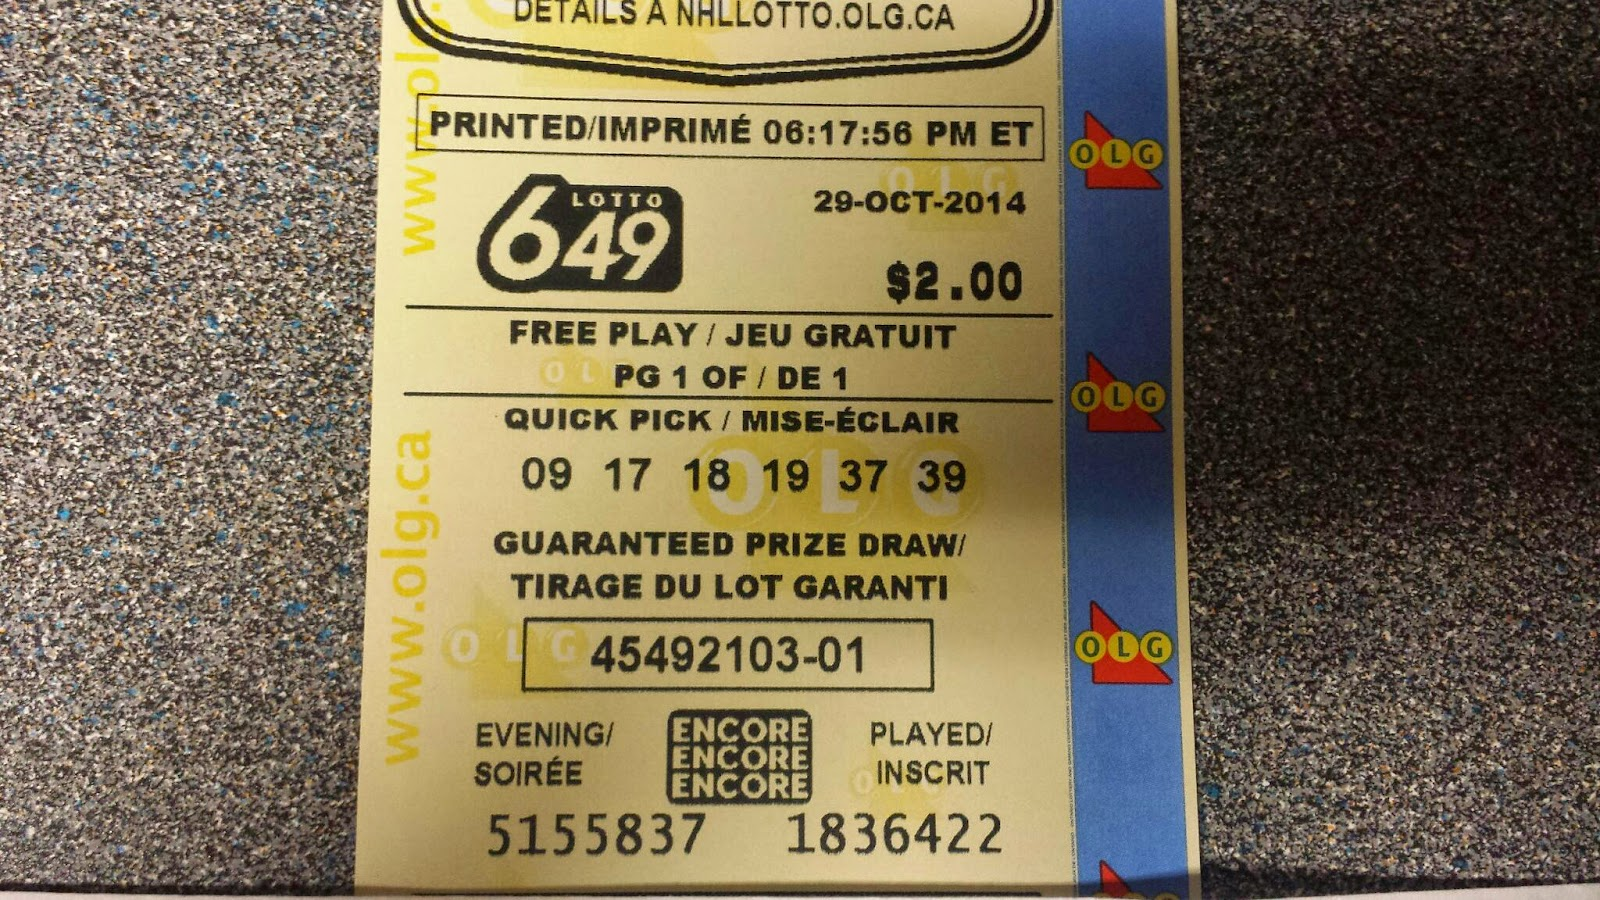 lottoa 649 guaranteed prize draw how to tell winner